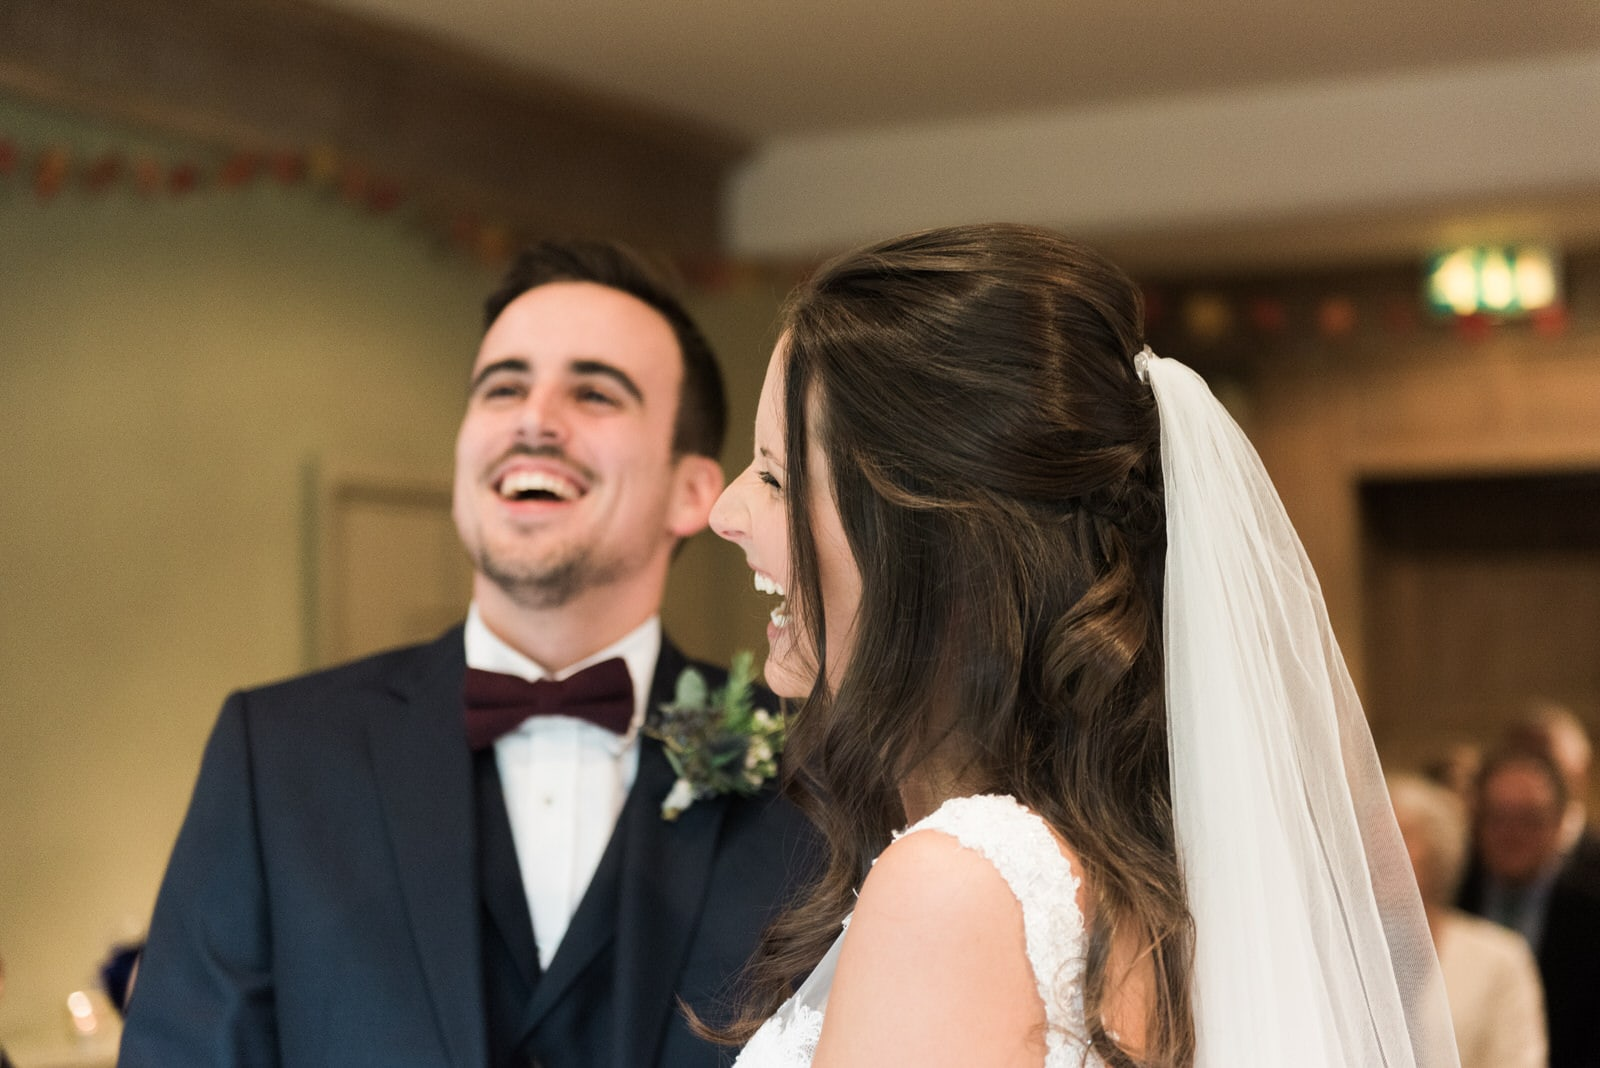 Bride and groom laughing during wedding ceremony at Whirlowbrook Hall